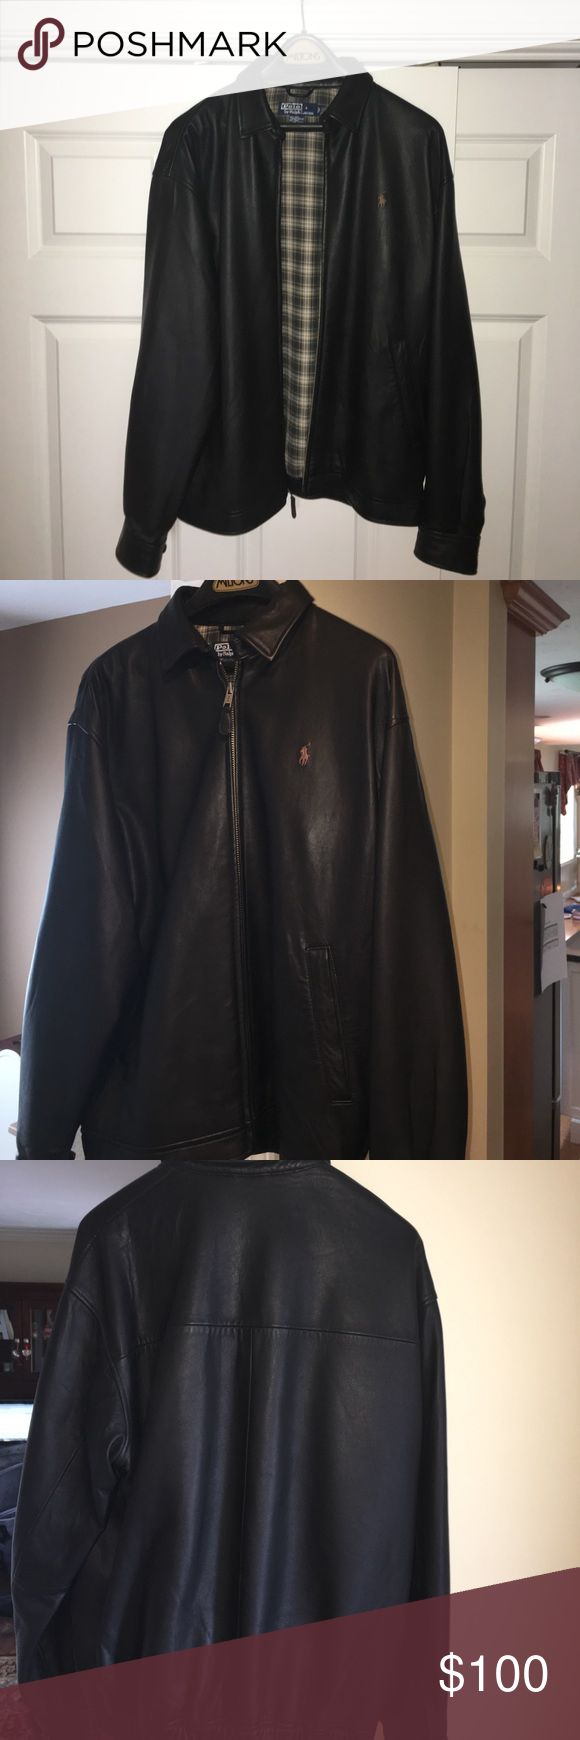 Men's Ralph Lauren Polo Leather Jacket Beautiful, gently worn black leather jacket with brown Polo logo on left chest Polo by Ralph Lauren Jackets & Coats Bomber & Varsity